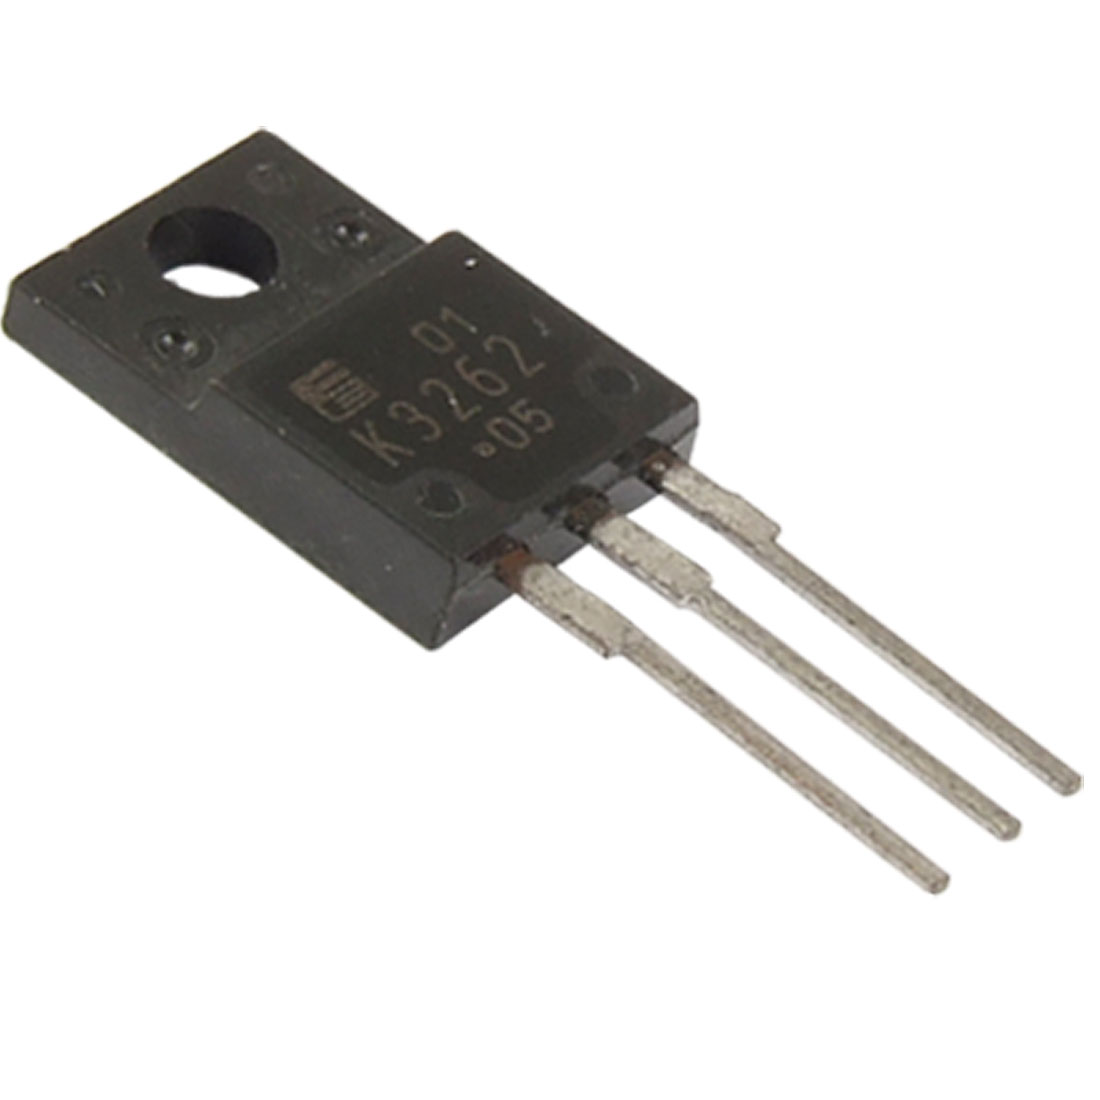 2SK3262 Silicon N-channel MOSFET Transistor 200V 20A